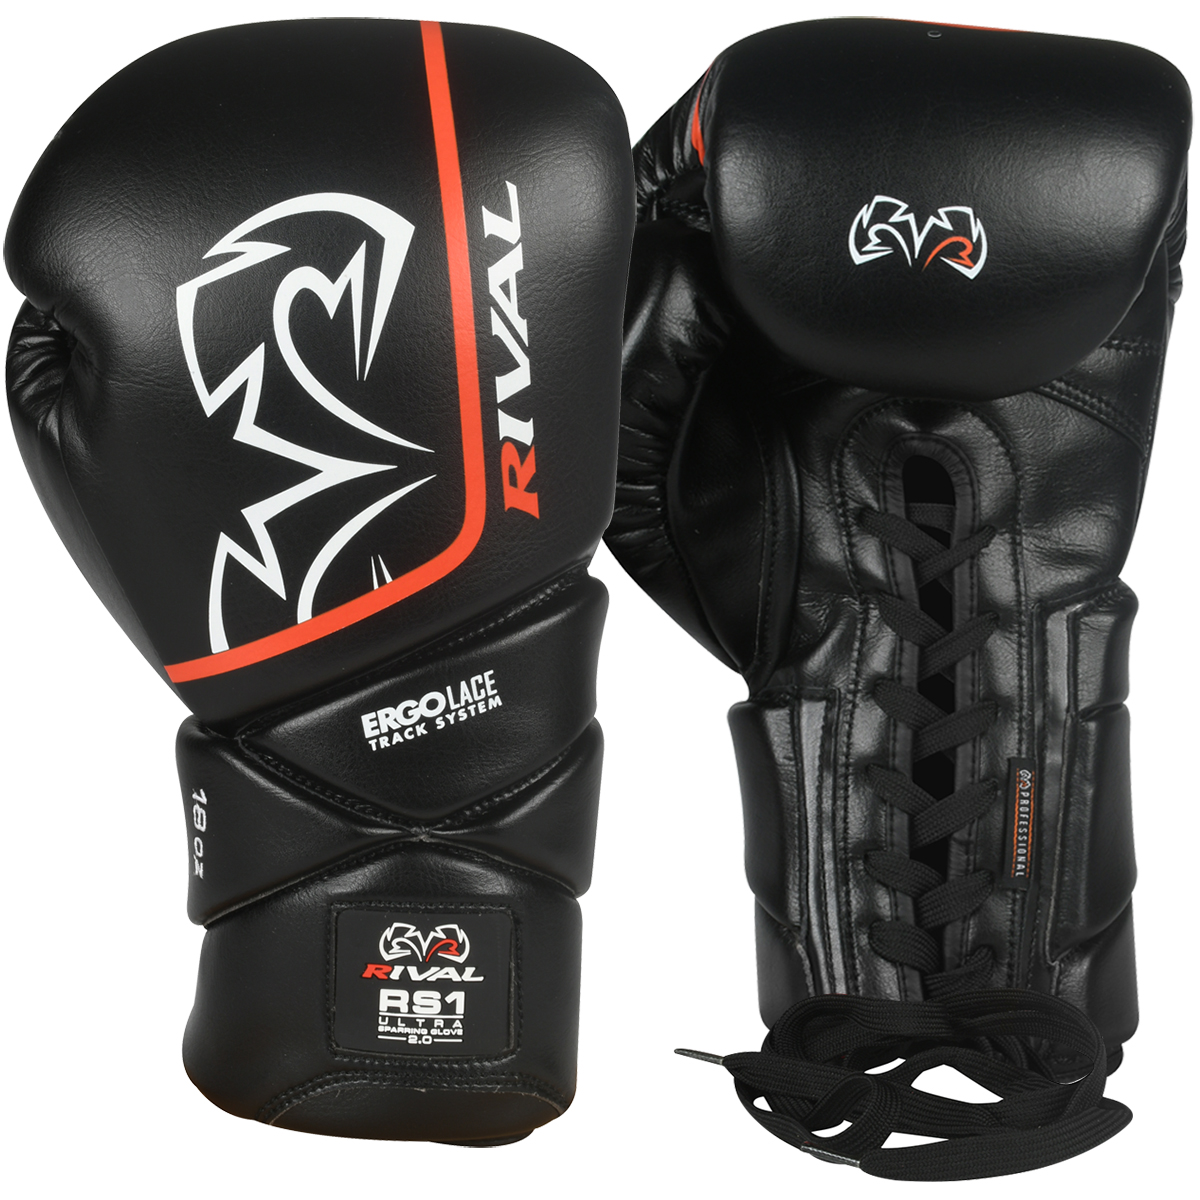 Pro Box Boxing Gloves Signature Series Sparring Training Lace Up